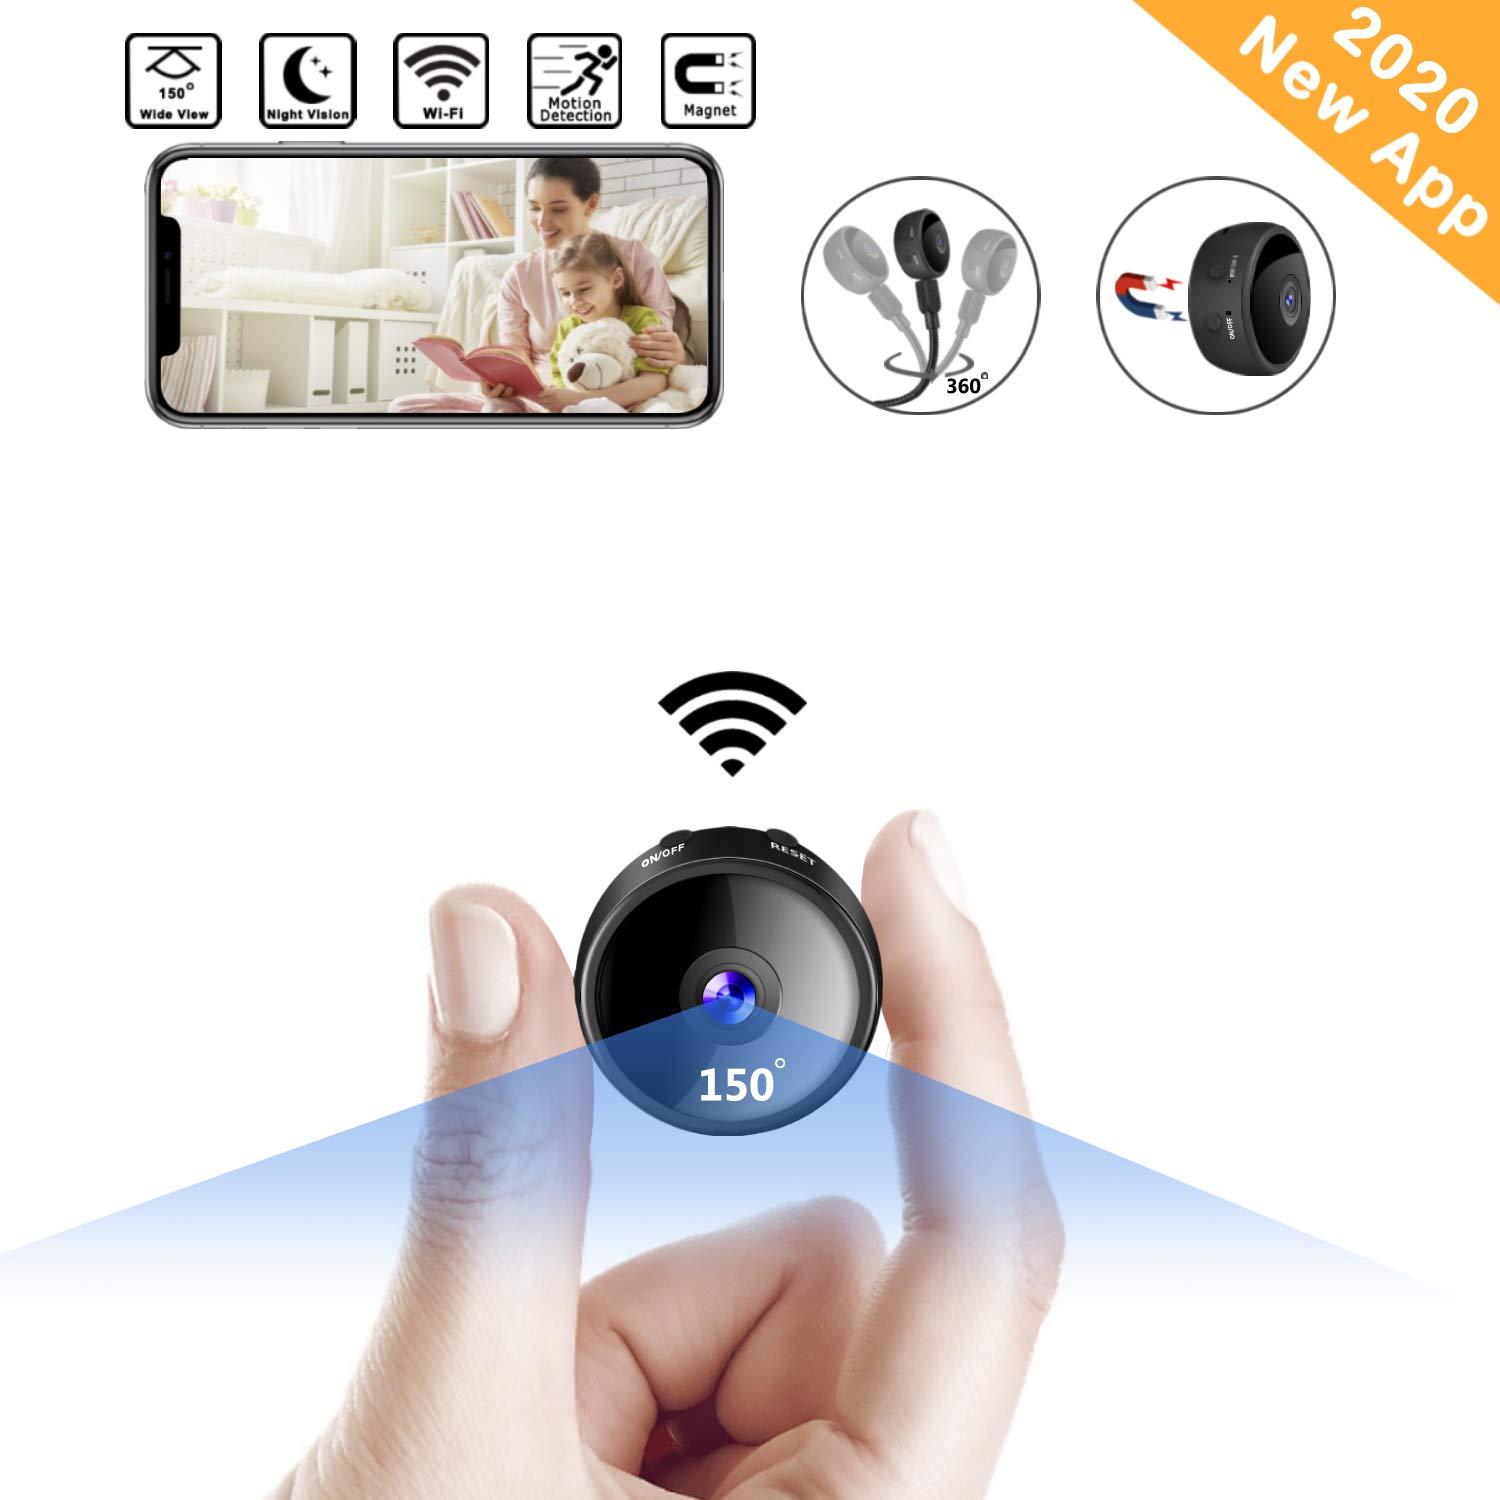 CreateGreat Mini Spy Camera Wireless Hidden WiF Camera HD 1080P Portable Home Security Cameras Nanny Cam Small Indoor Video Recorder Motion Activated Night Vision by CreateGreat